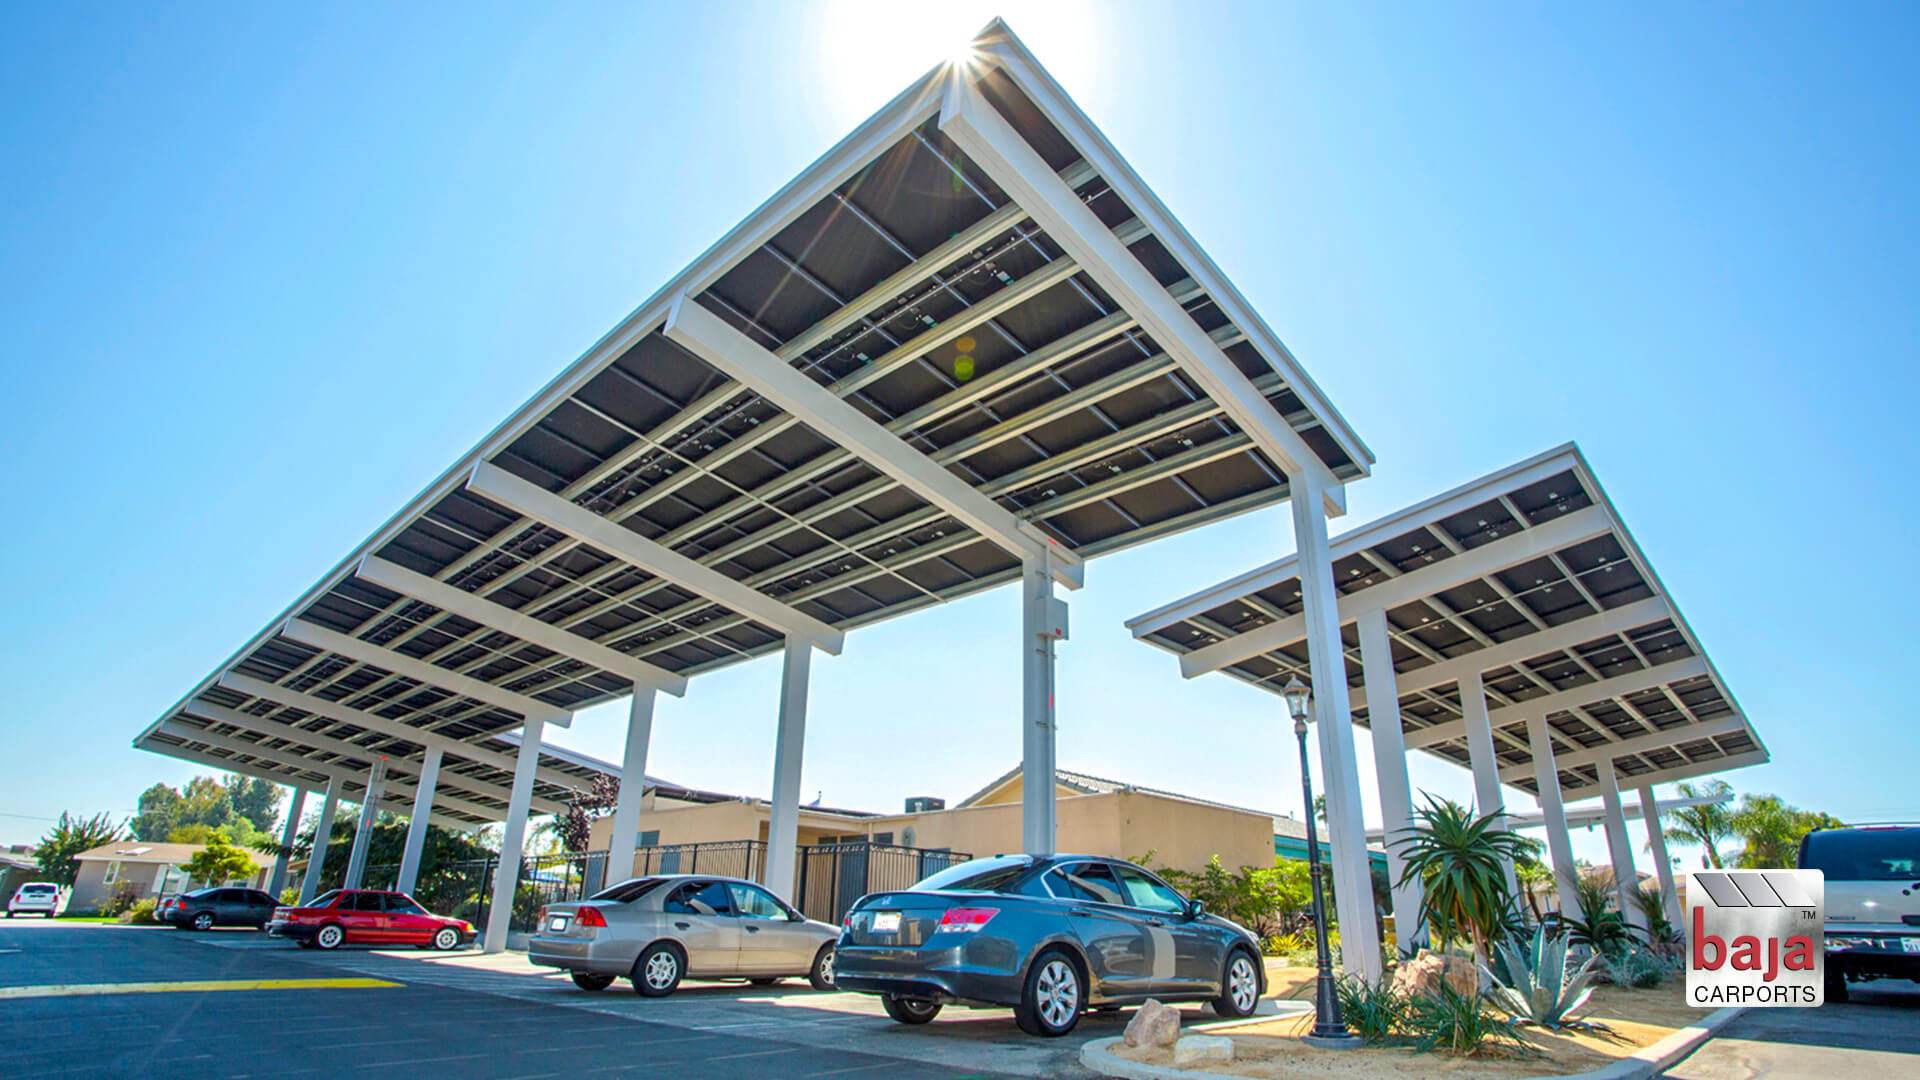 guest park under solar carports at california estates